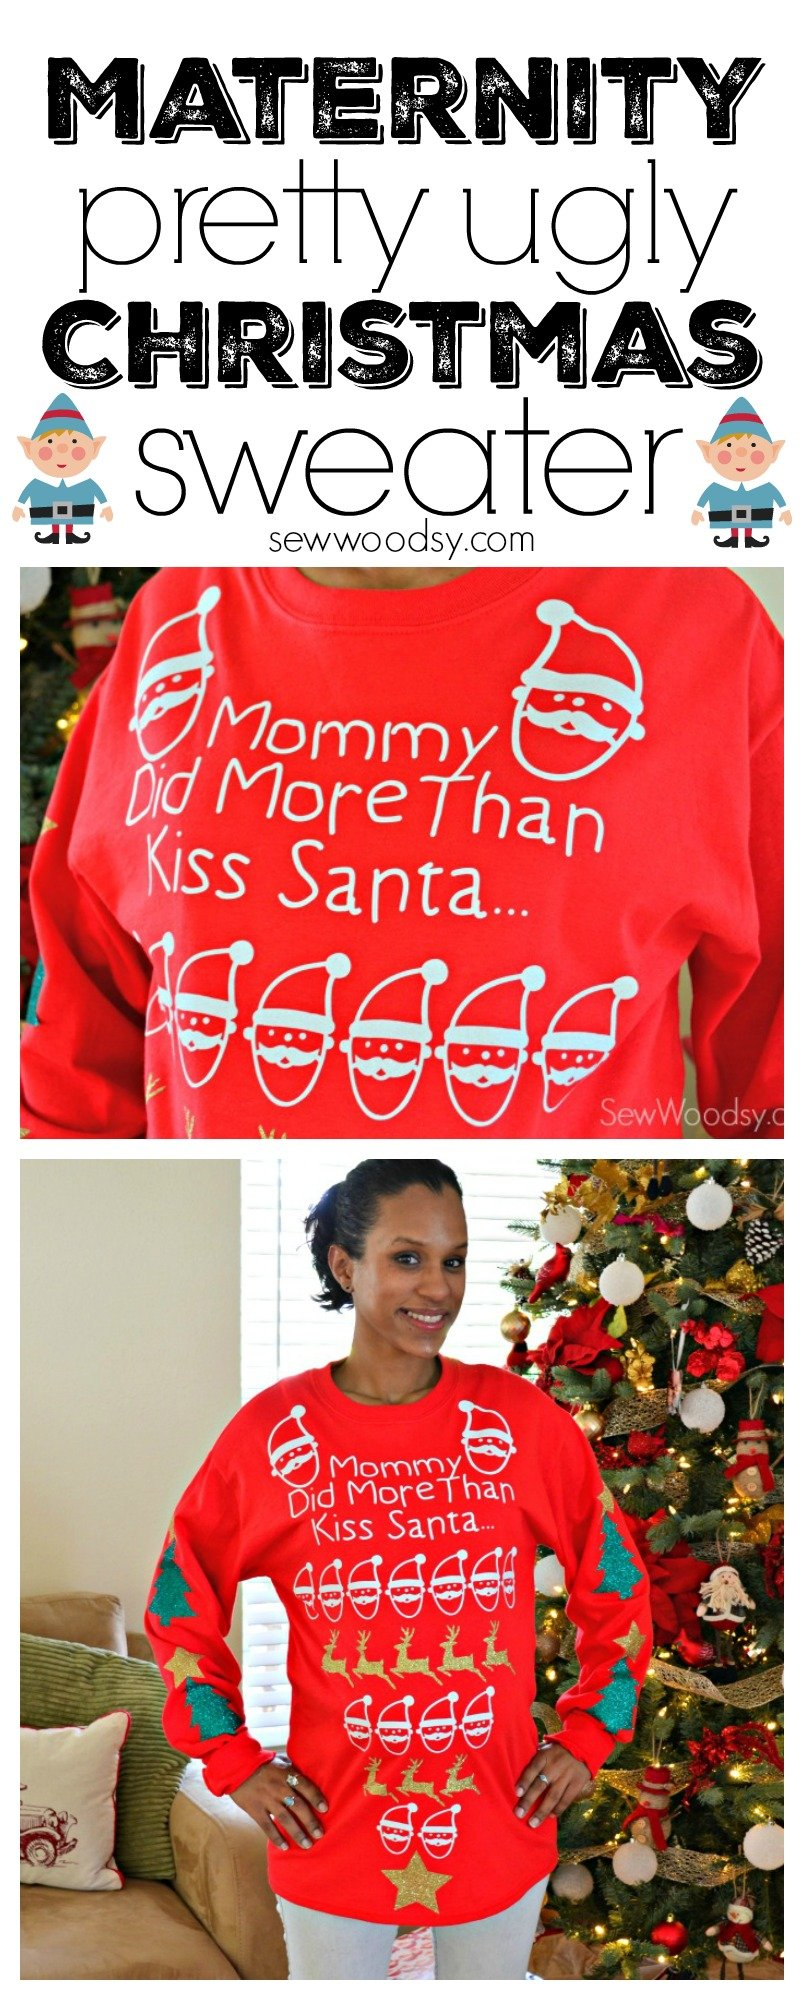 Maternity Pretty Ugly Christmas Sweater Sew Woodsy